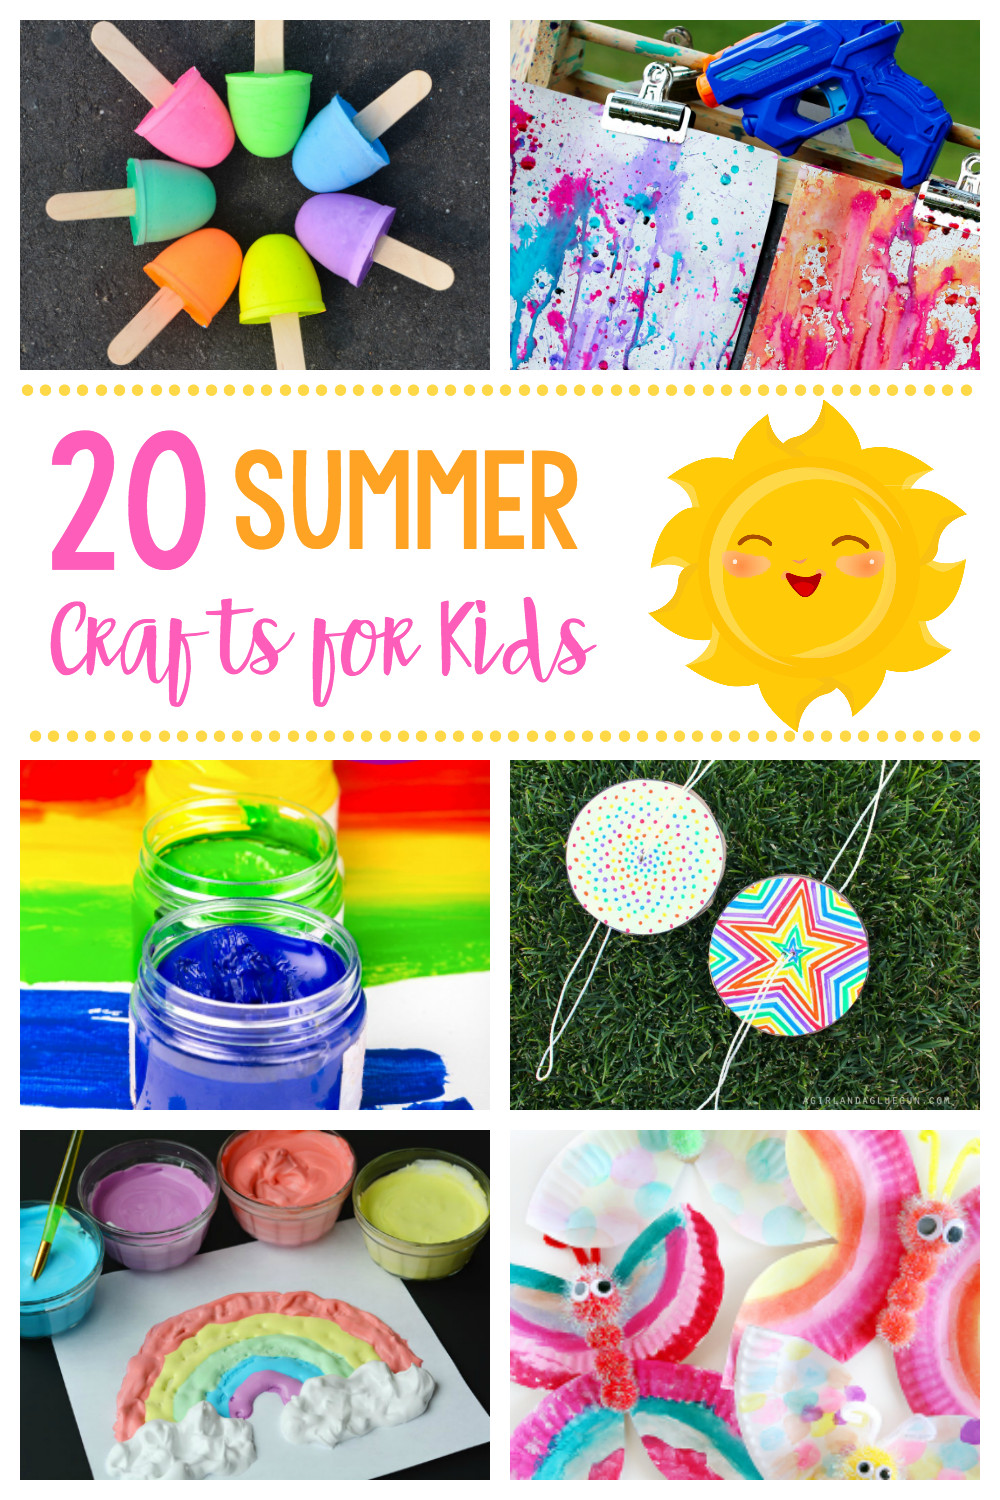 Best ideas about Fun Ideas For Kids . Save or Pin 20 Simple & Fun Summer Crafts for Kids Now.